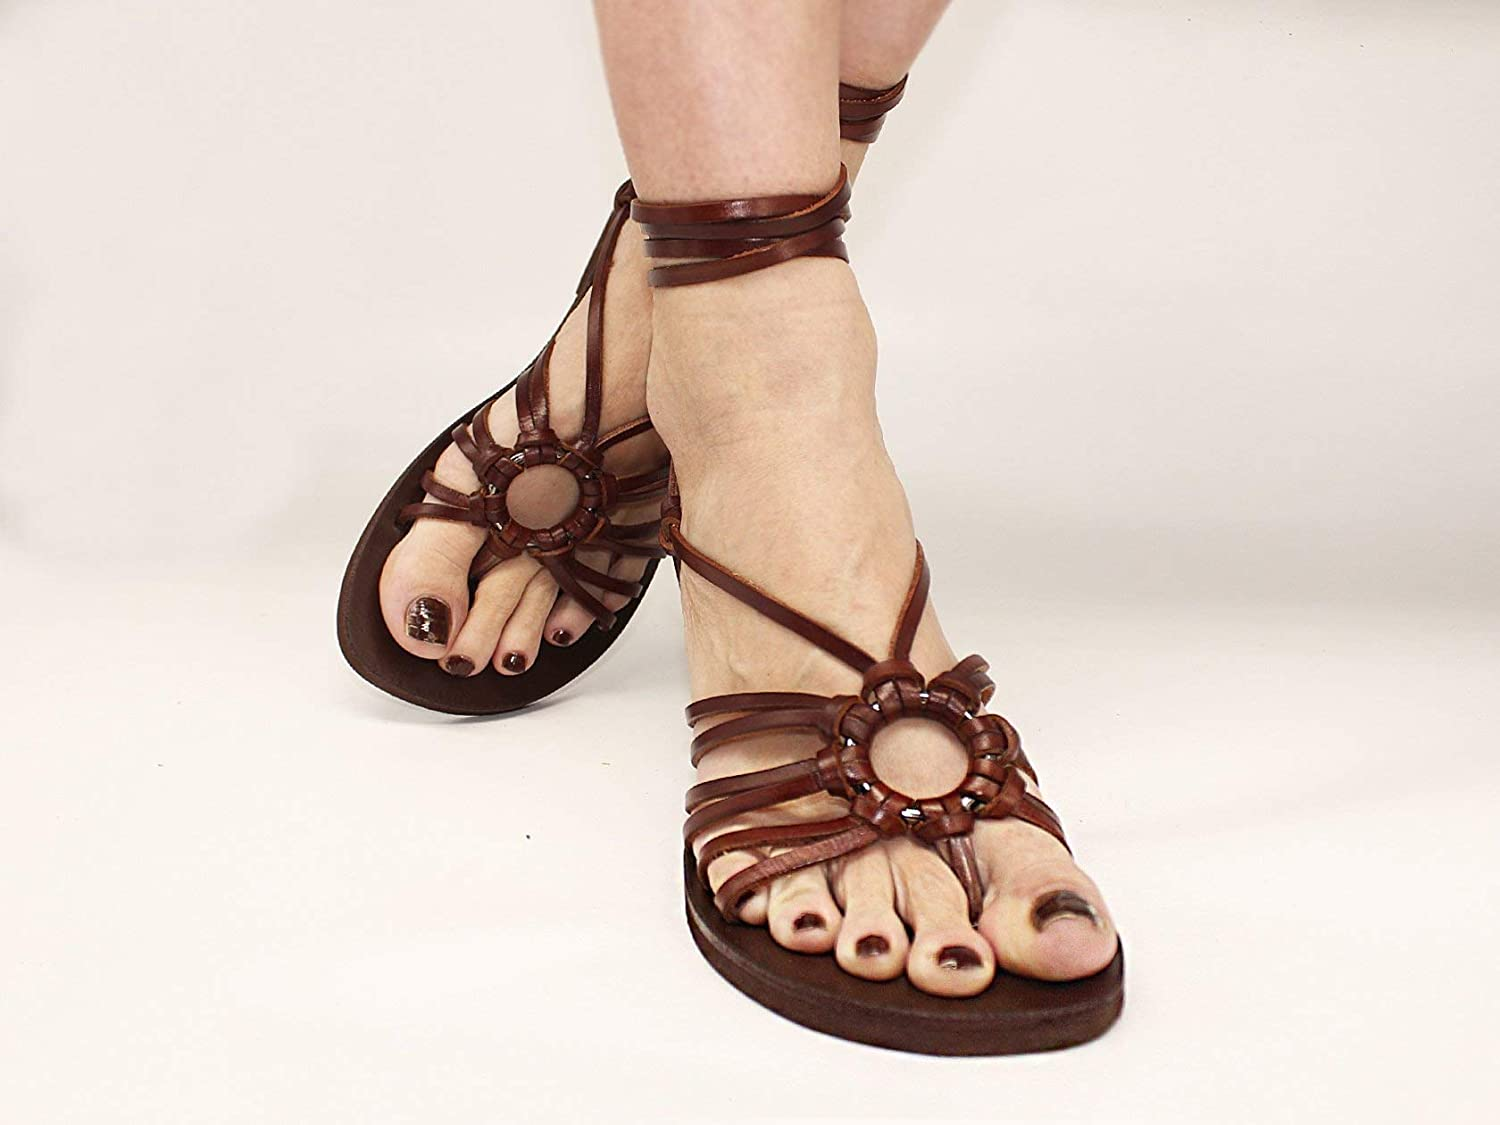 29a65fb7ea350 Amazon.com: Strappy Flats, Unique Style Lace Up Sandals Made Of ...